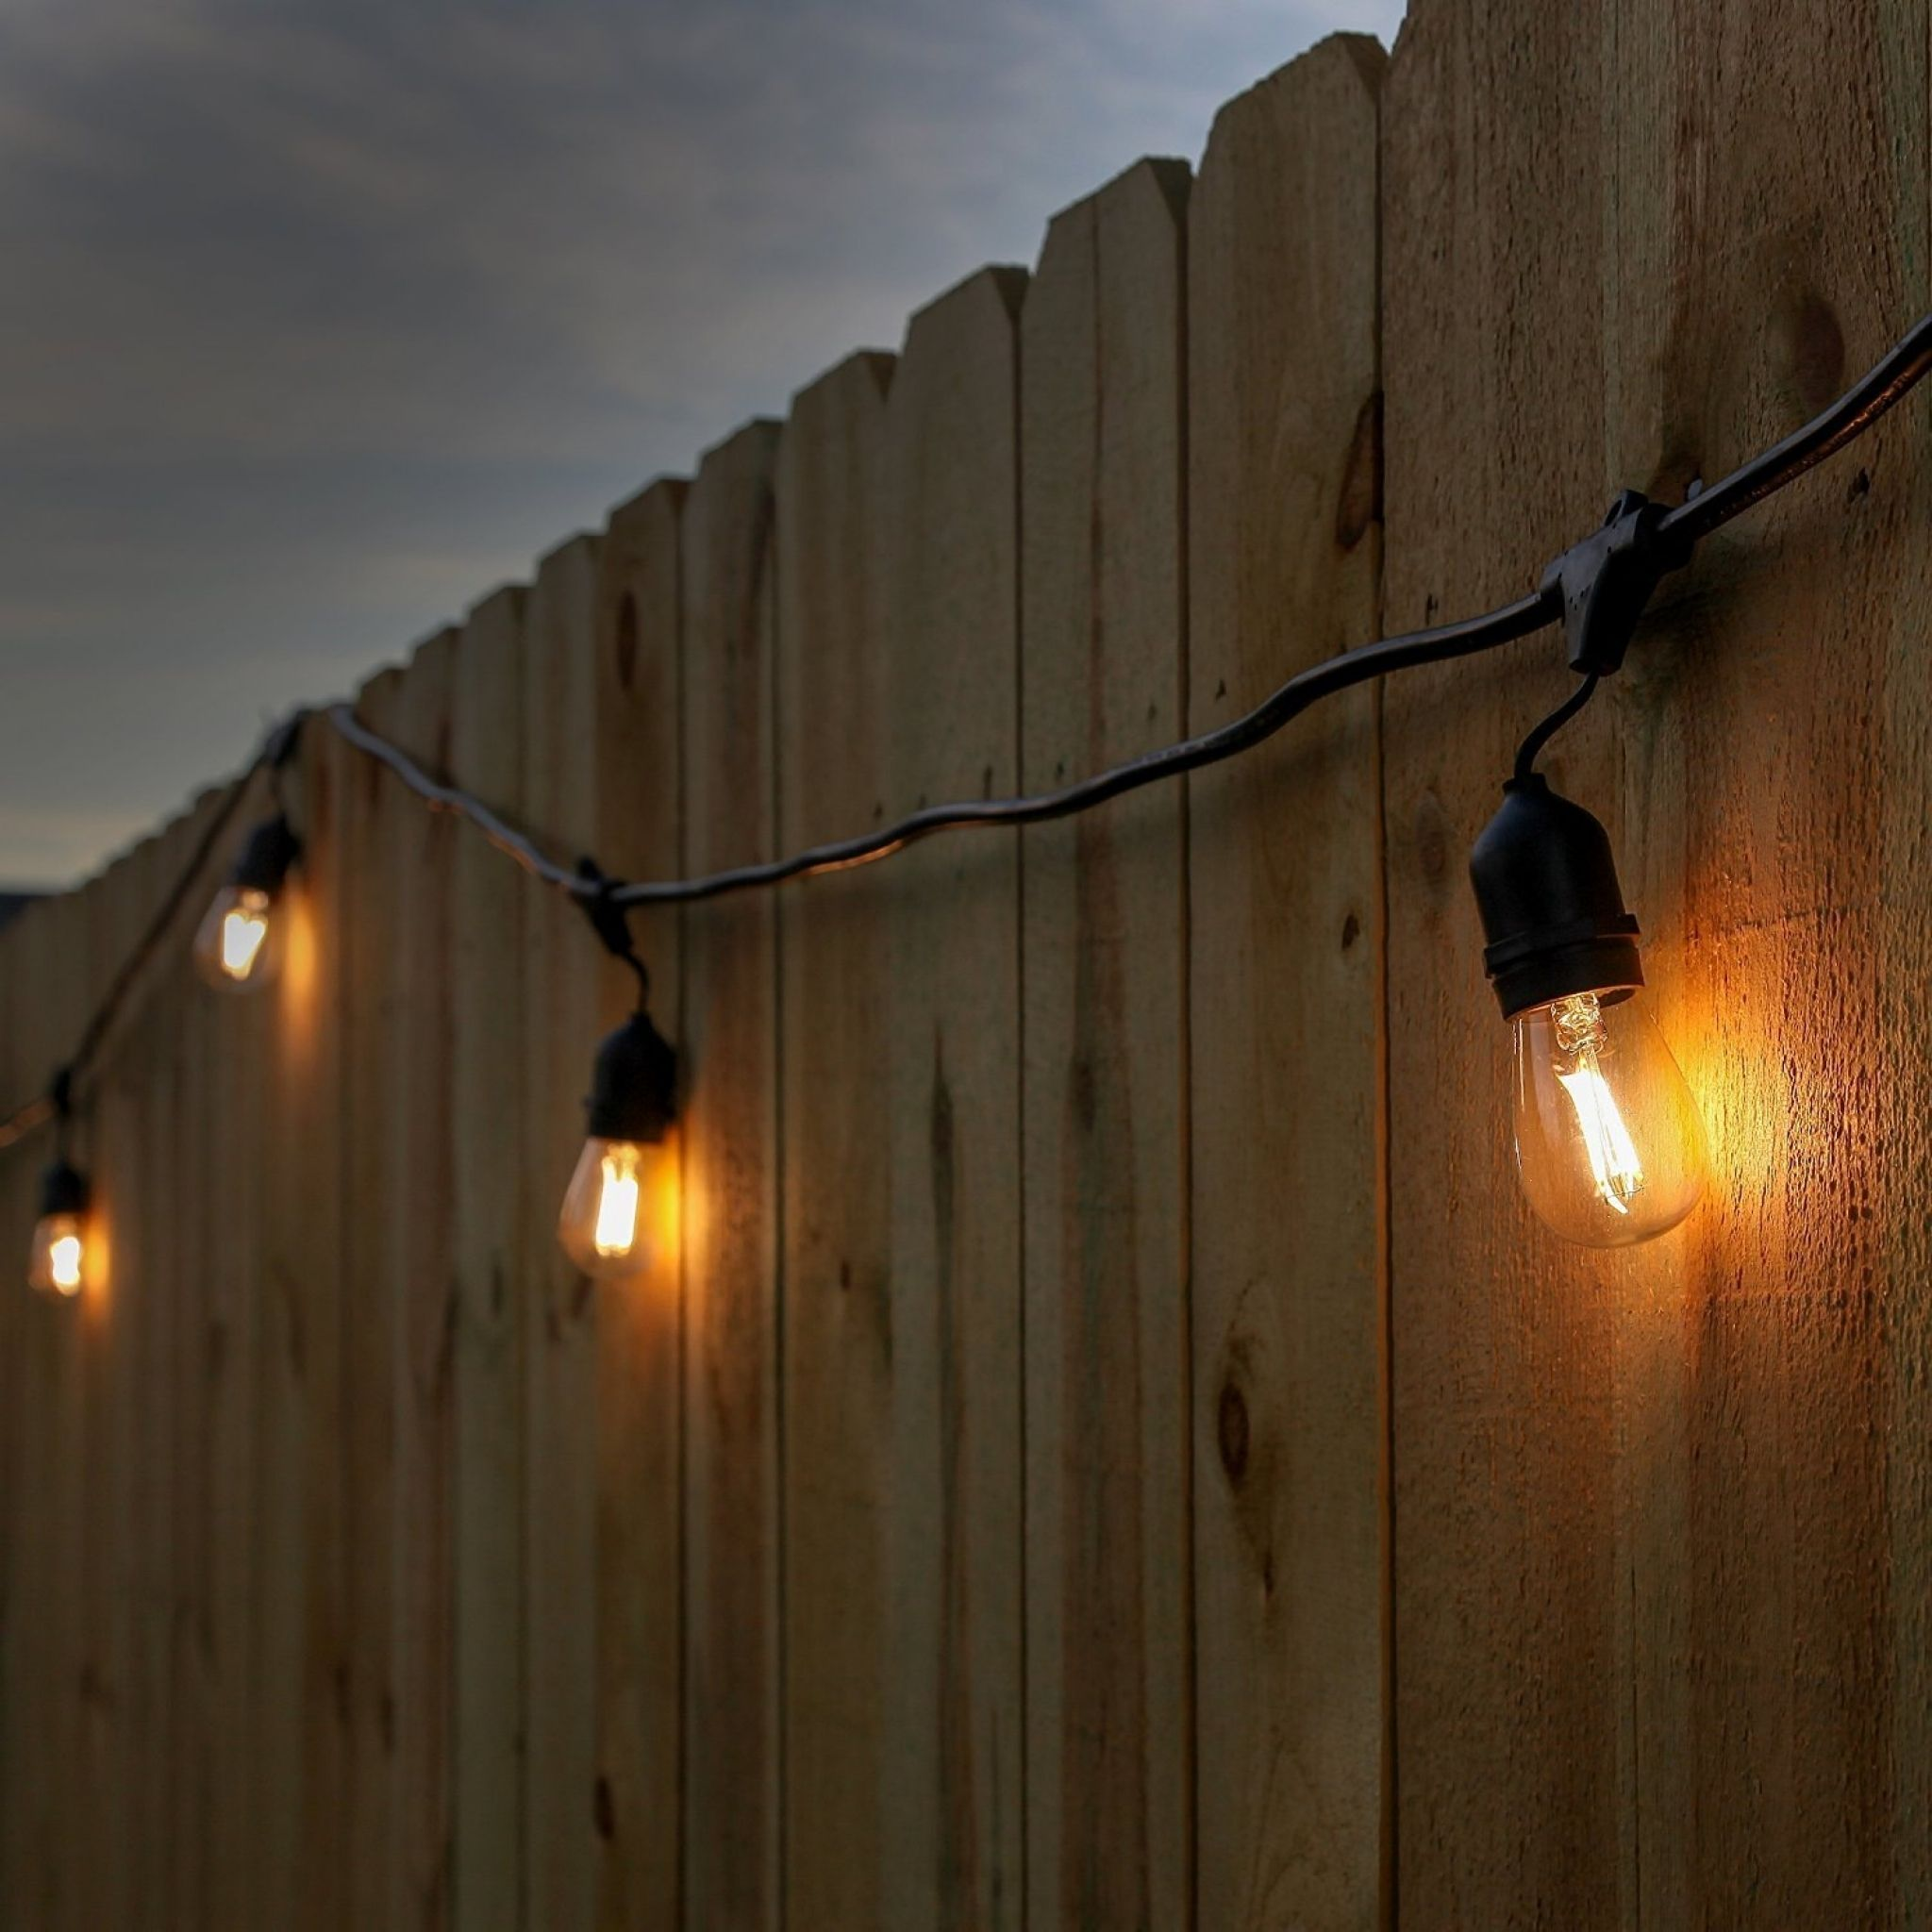 lights rgb string newhouse color changing sockets outdoor duty with rgbw led cord and socket lighting heavy hanging foot weatherproof light remote product technology